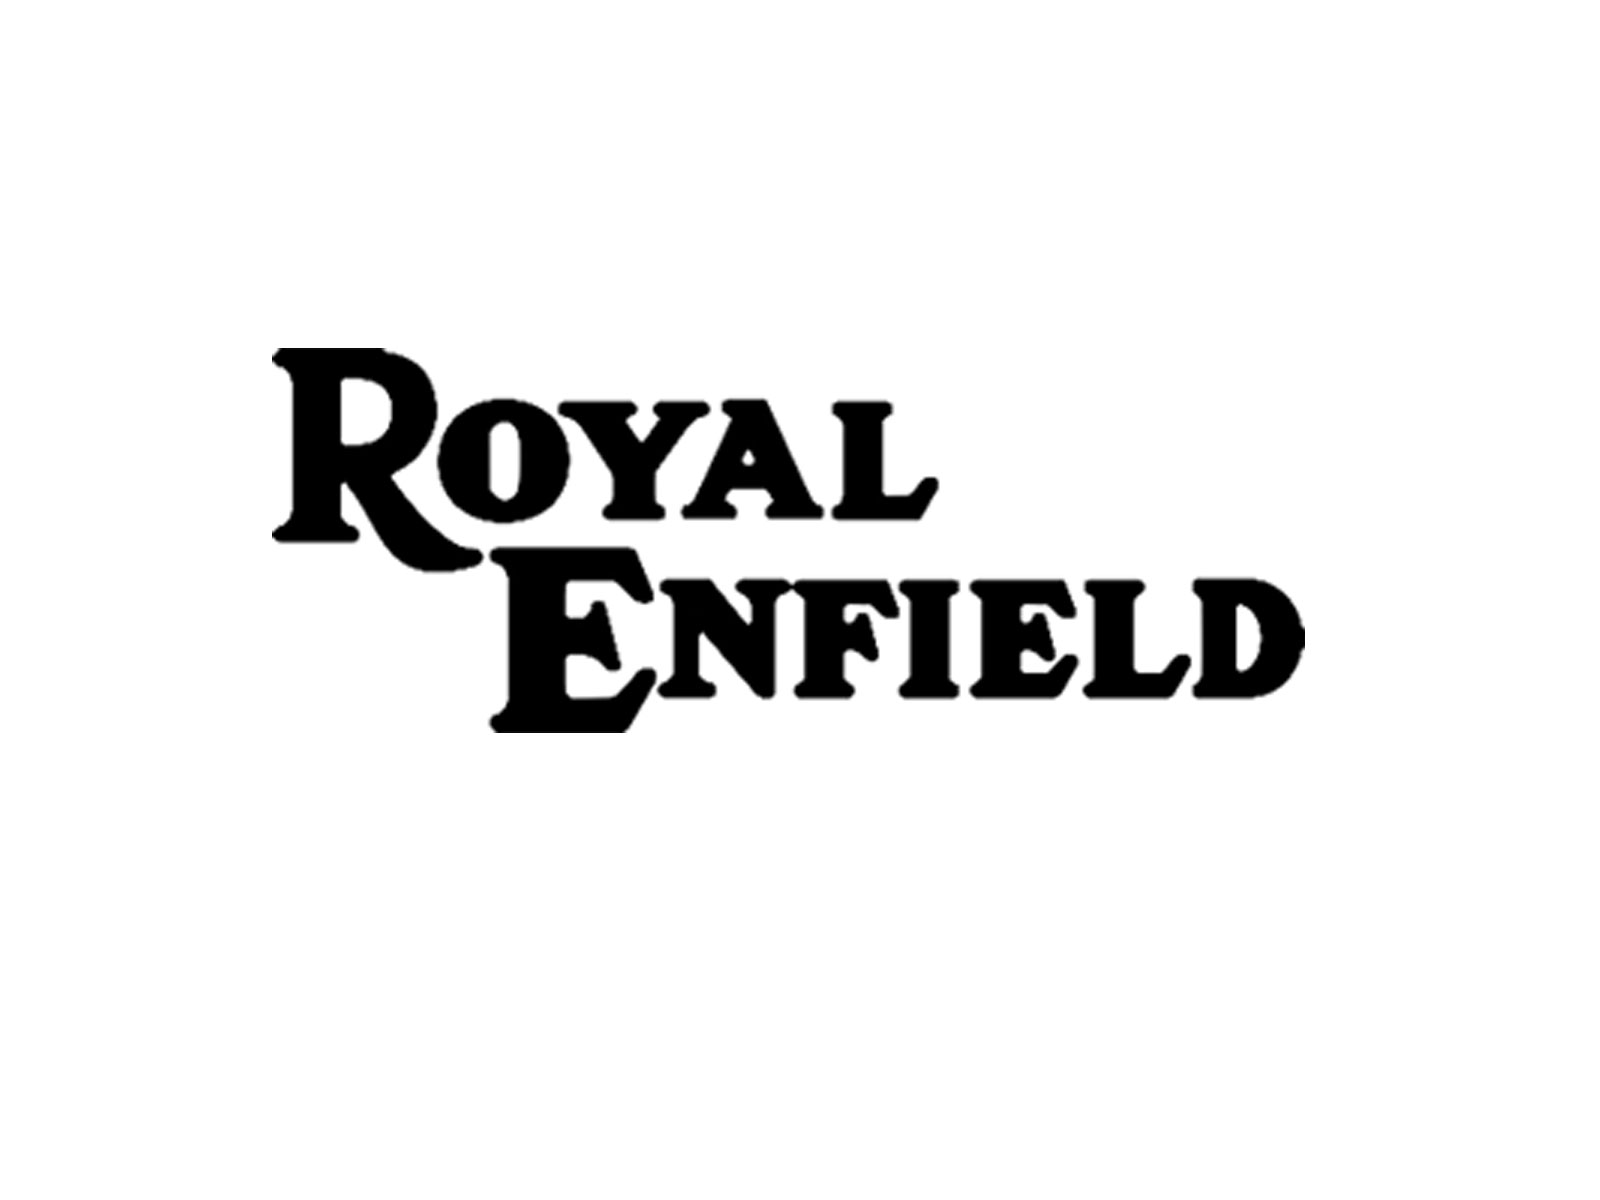 Royal Enfield – Intian osia